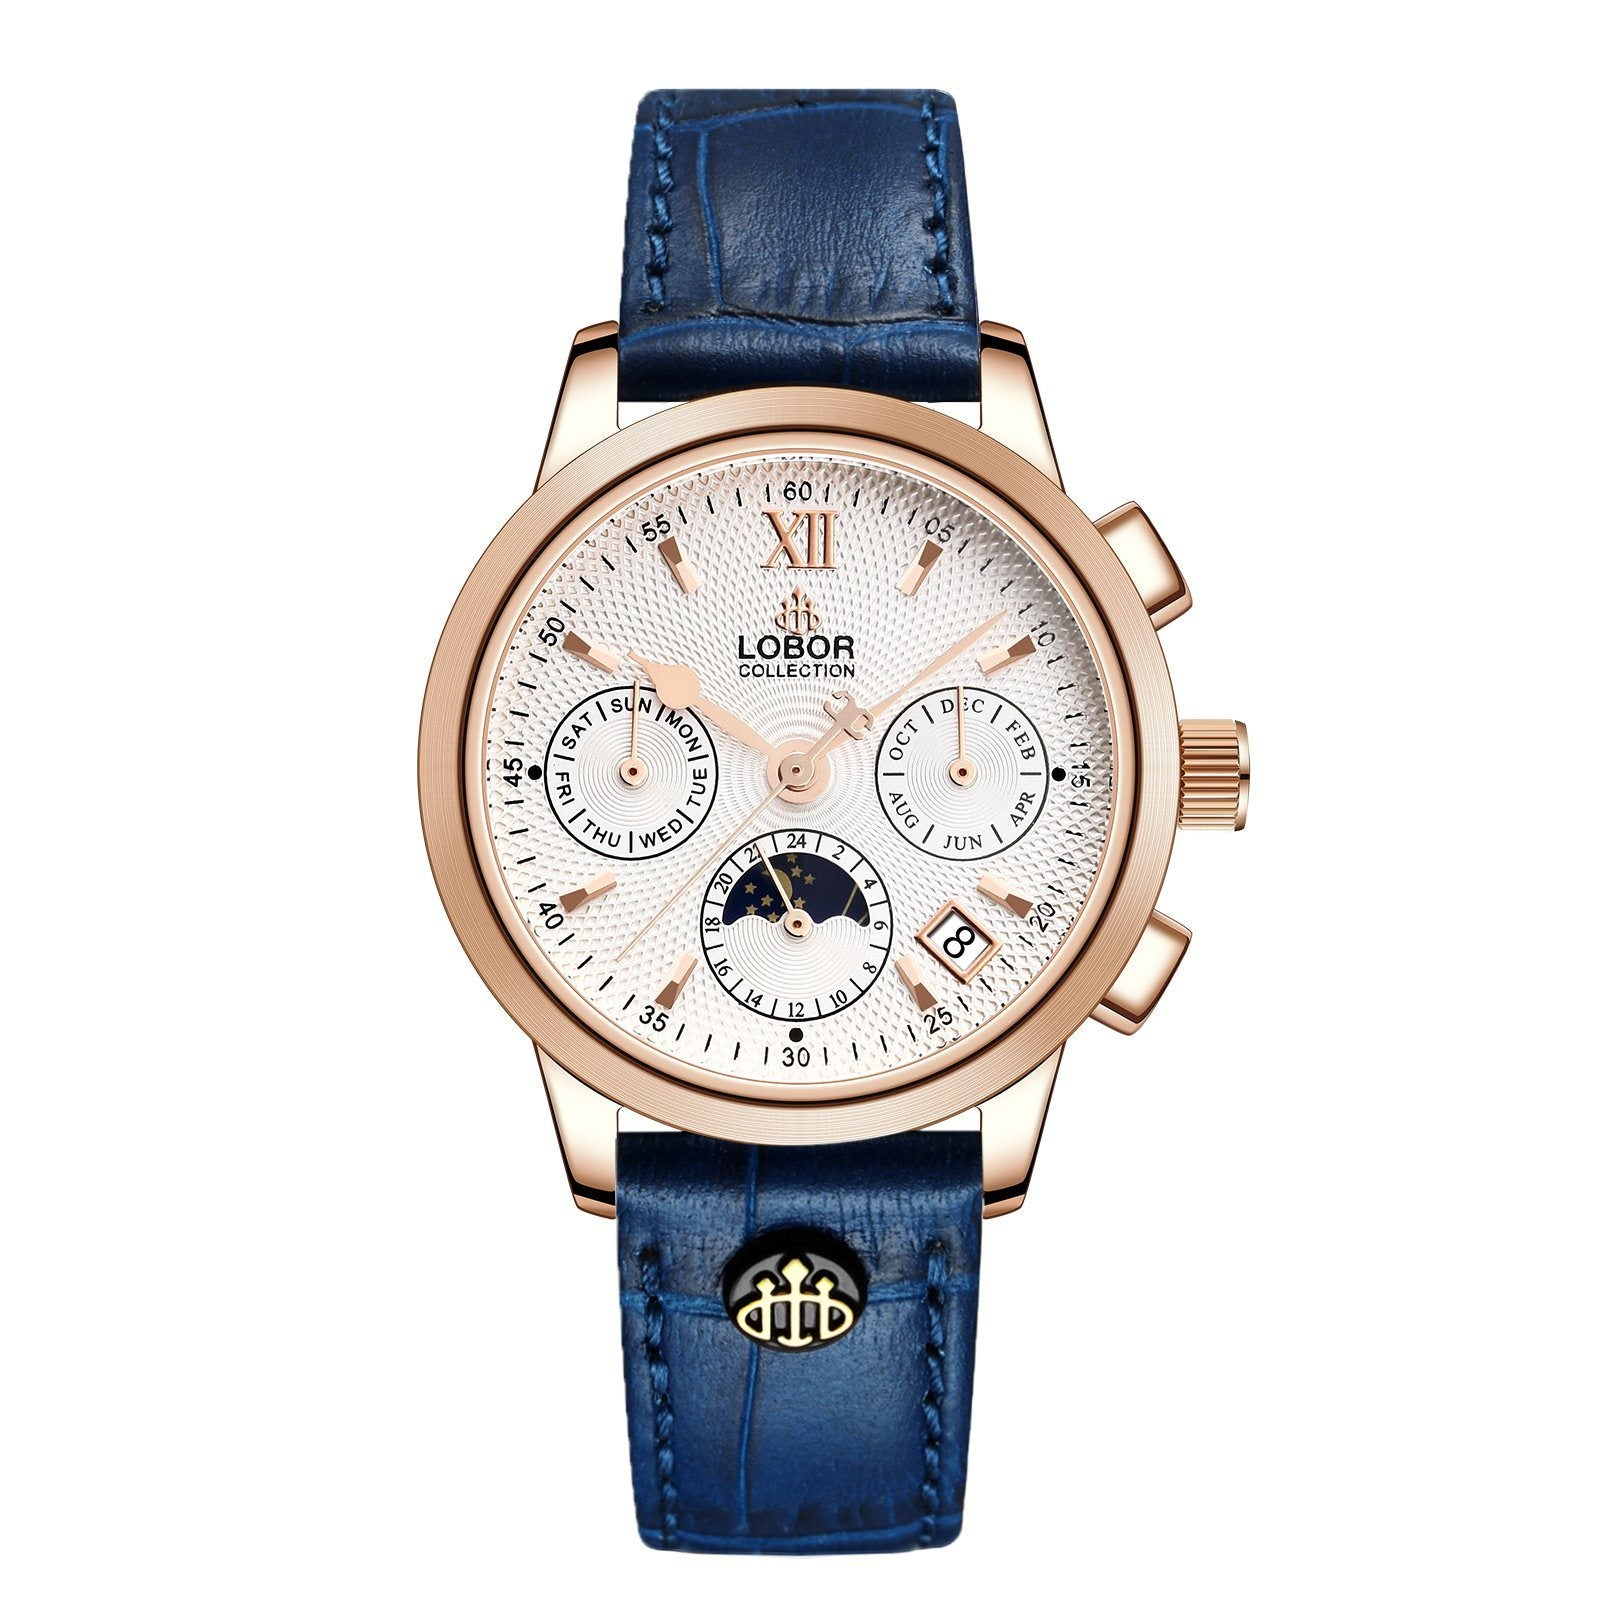 Cellini Guildford Blue 34mm